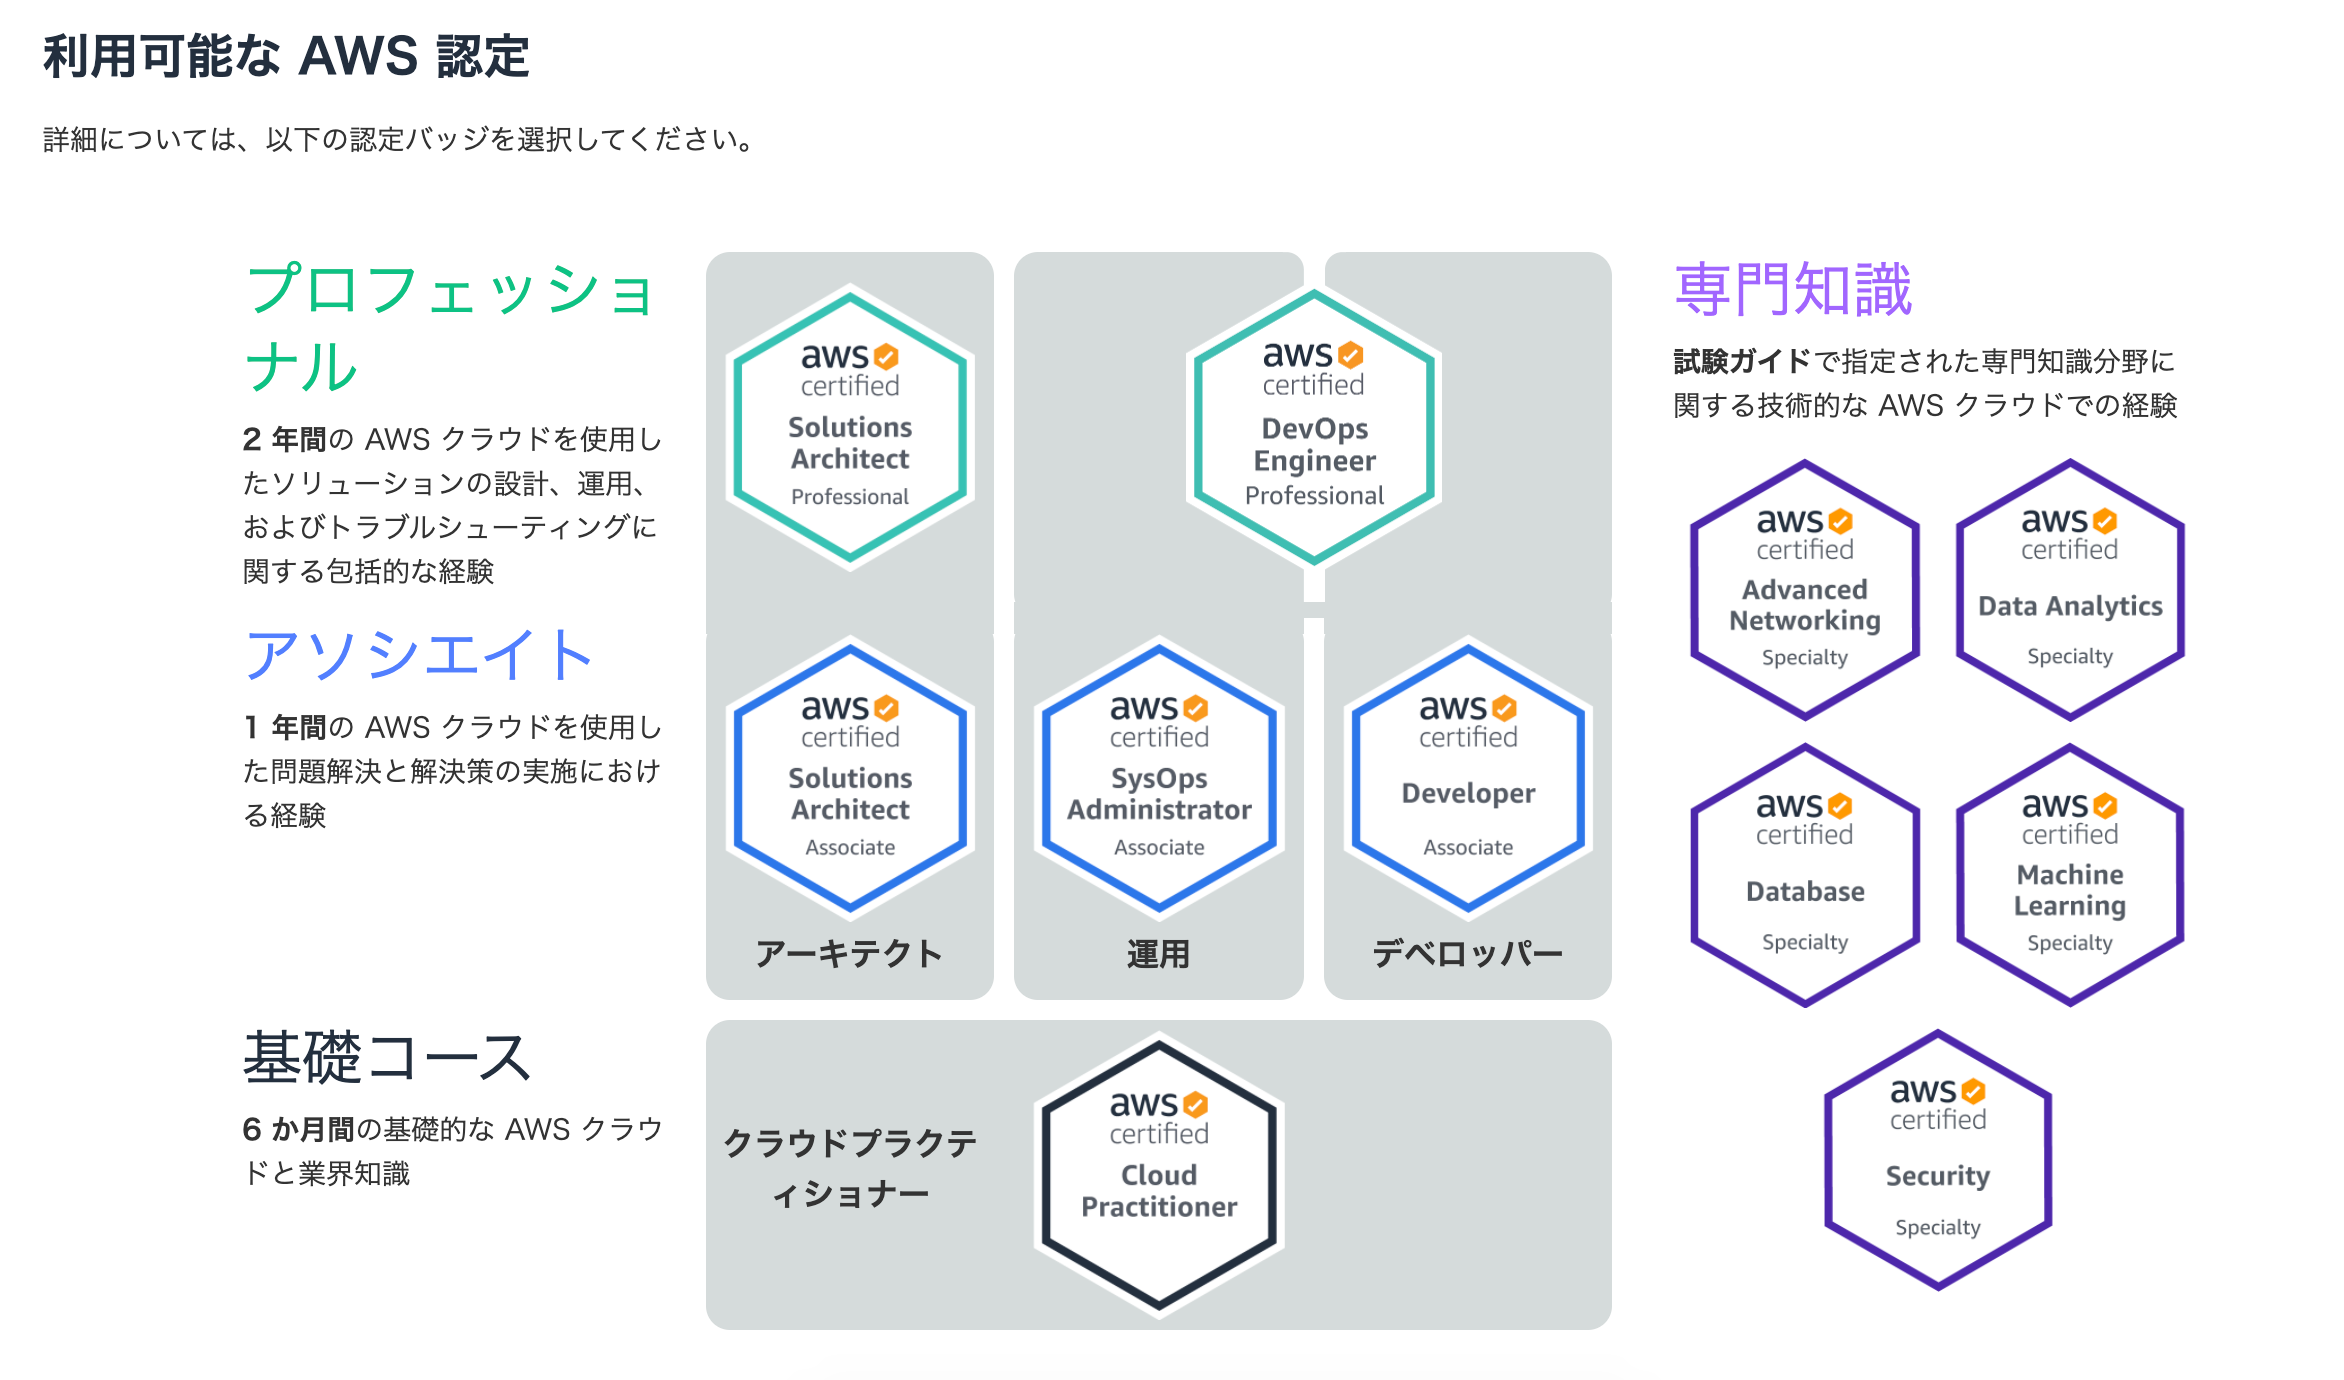 aws-certification-map.png